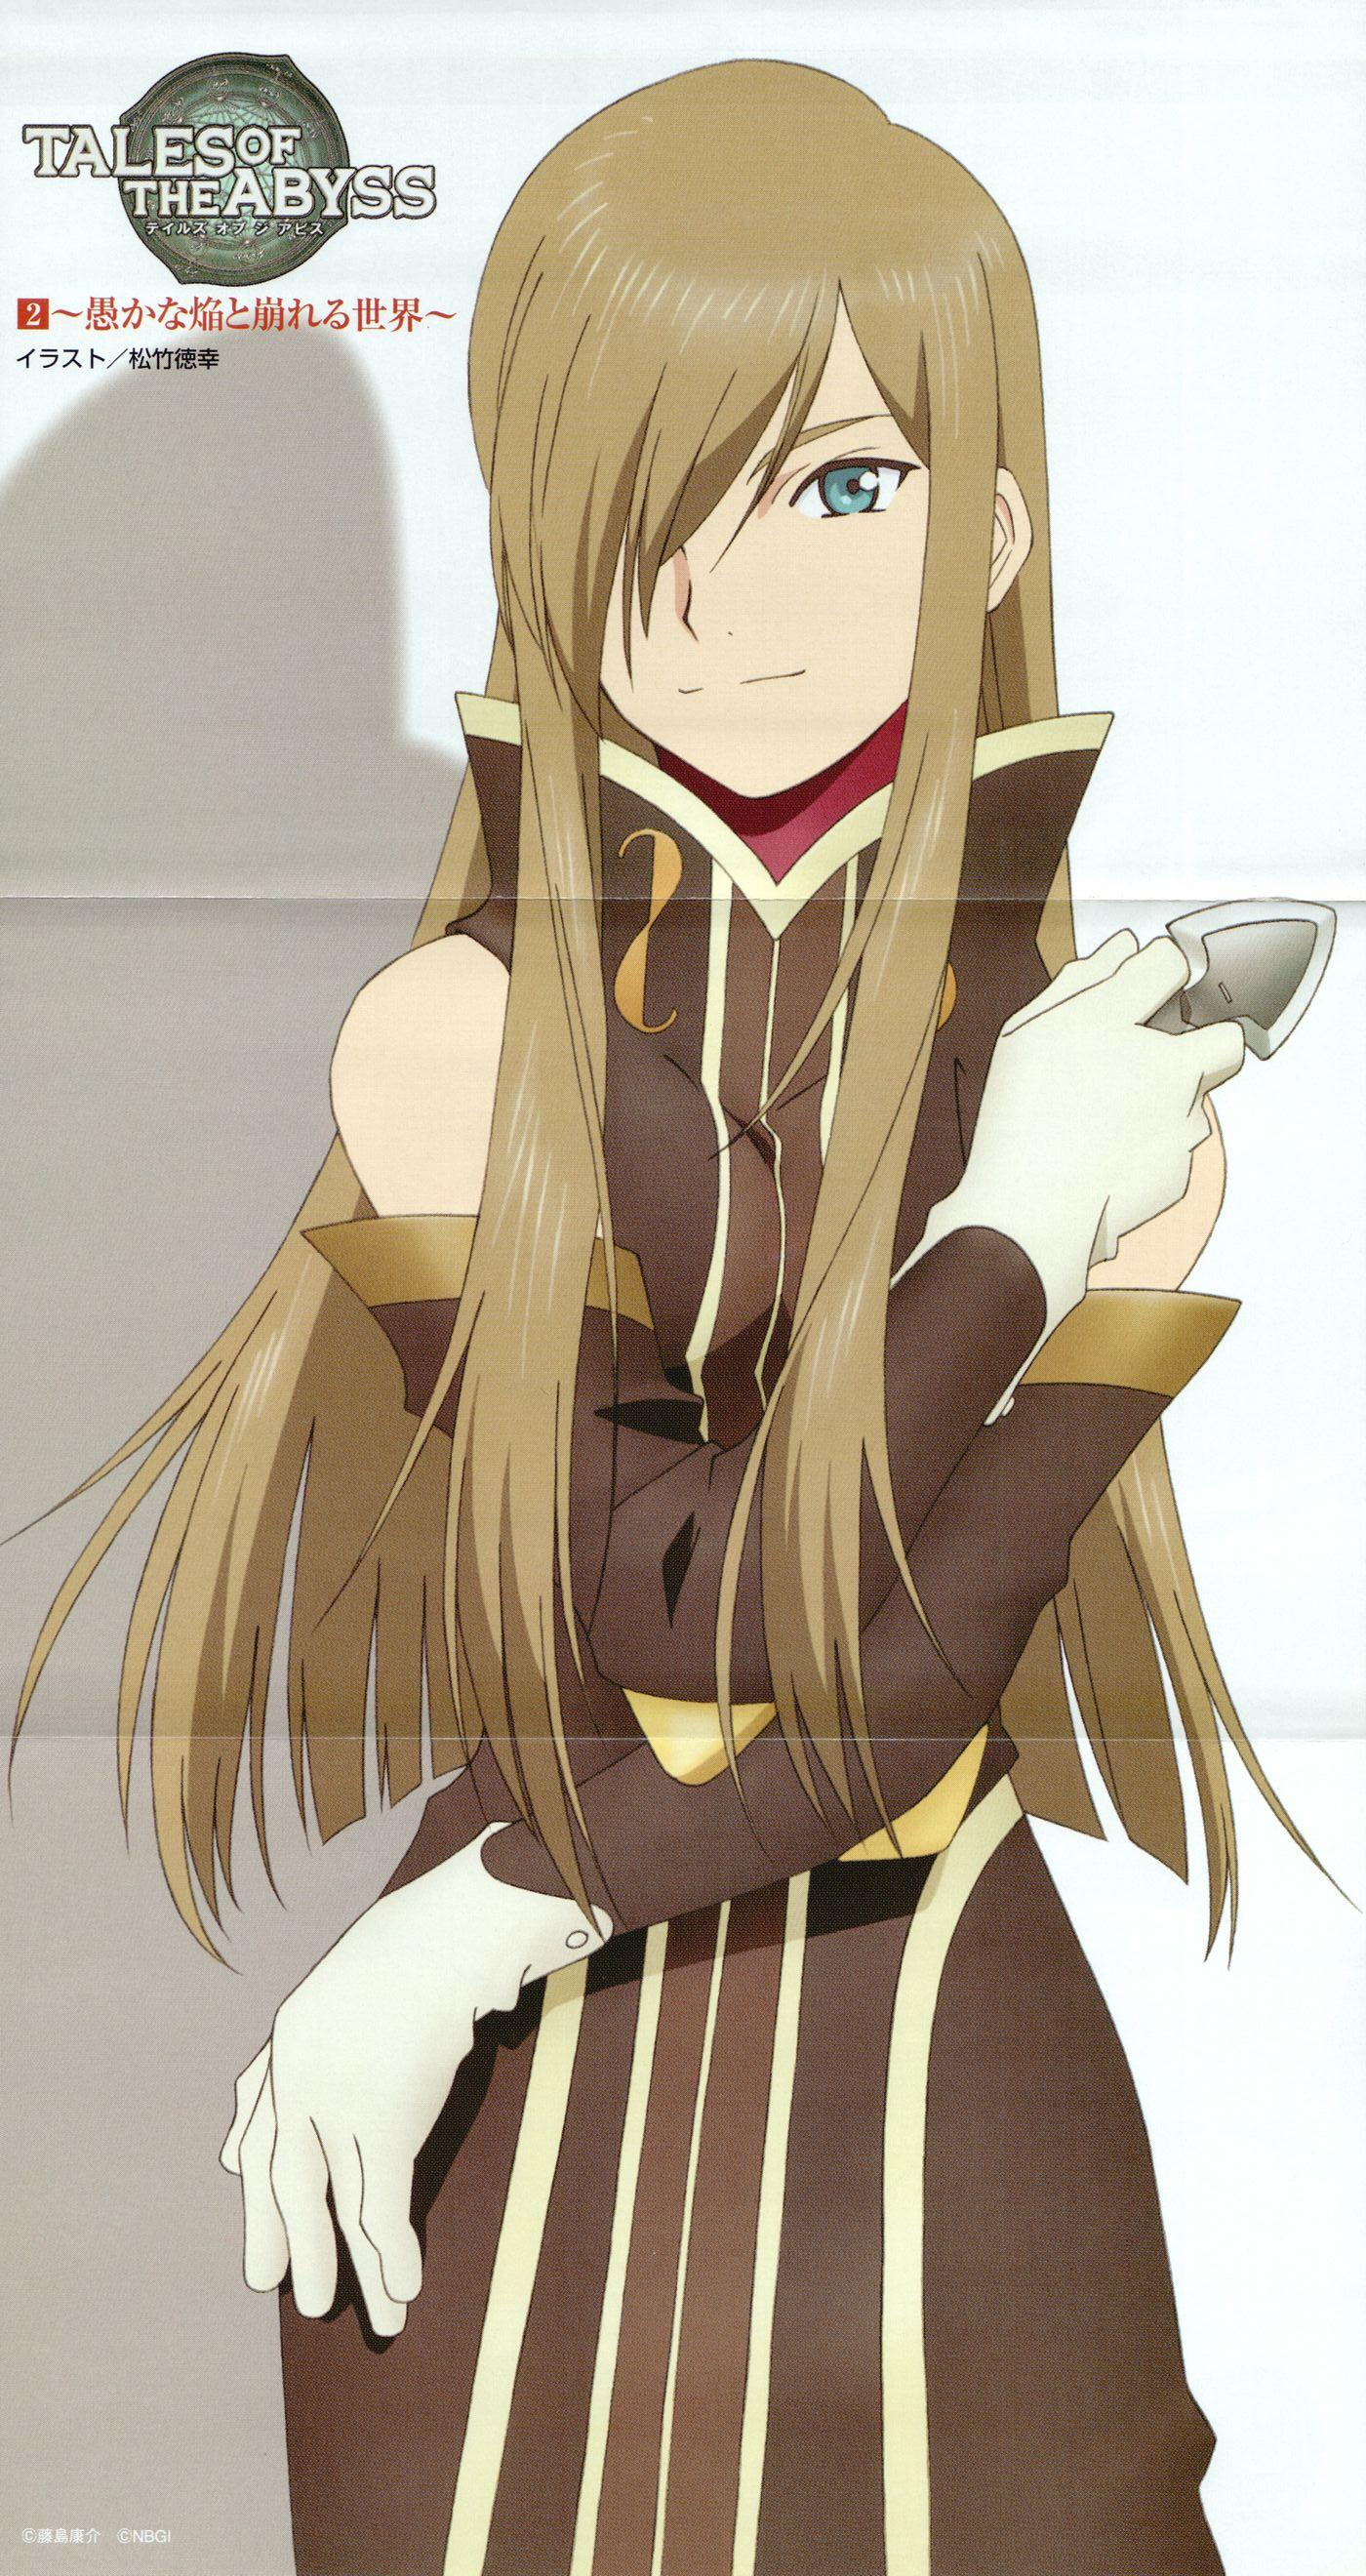 tear grants - tales of the abyss - image  481328